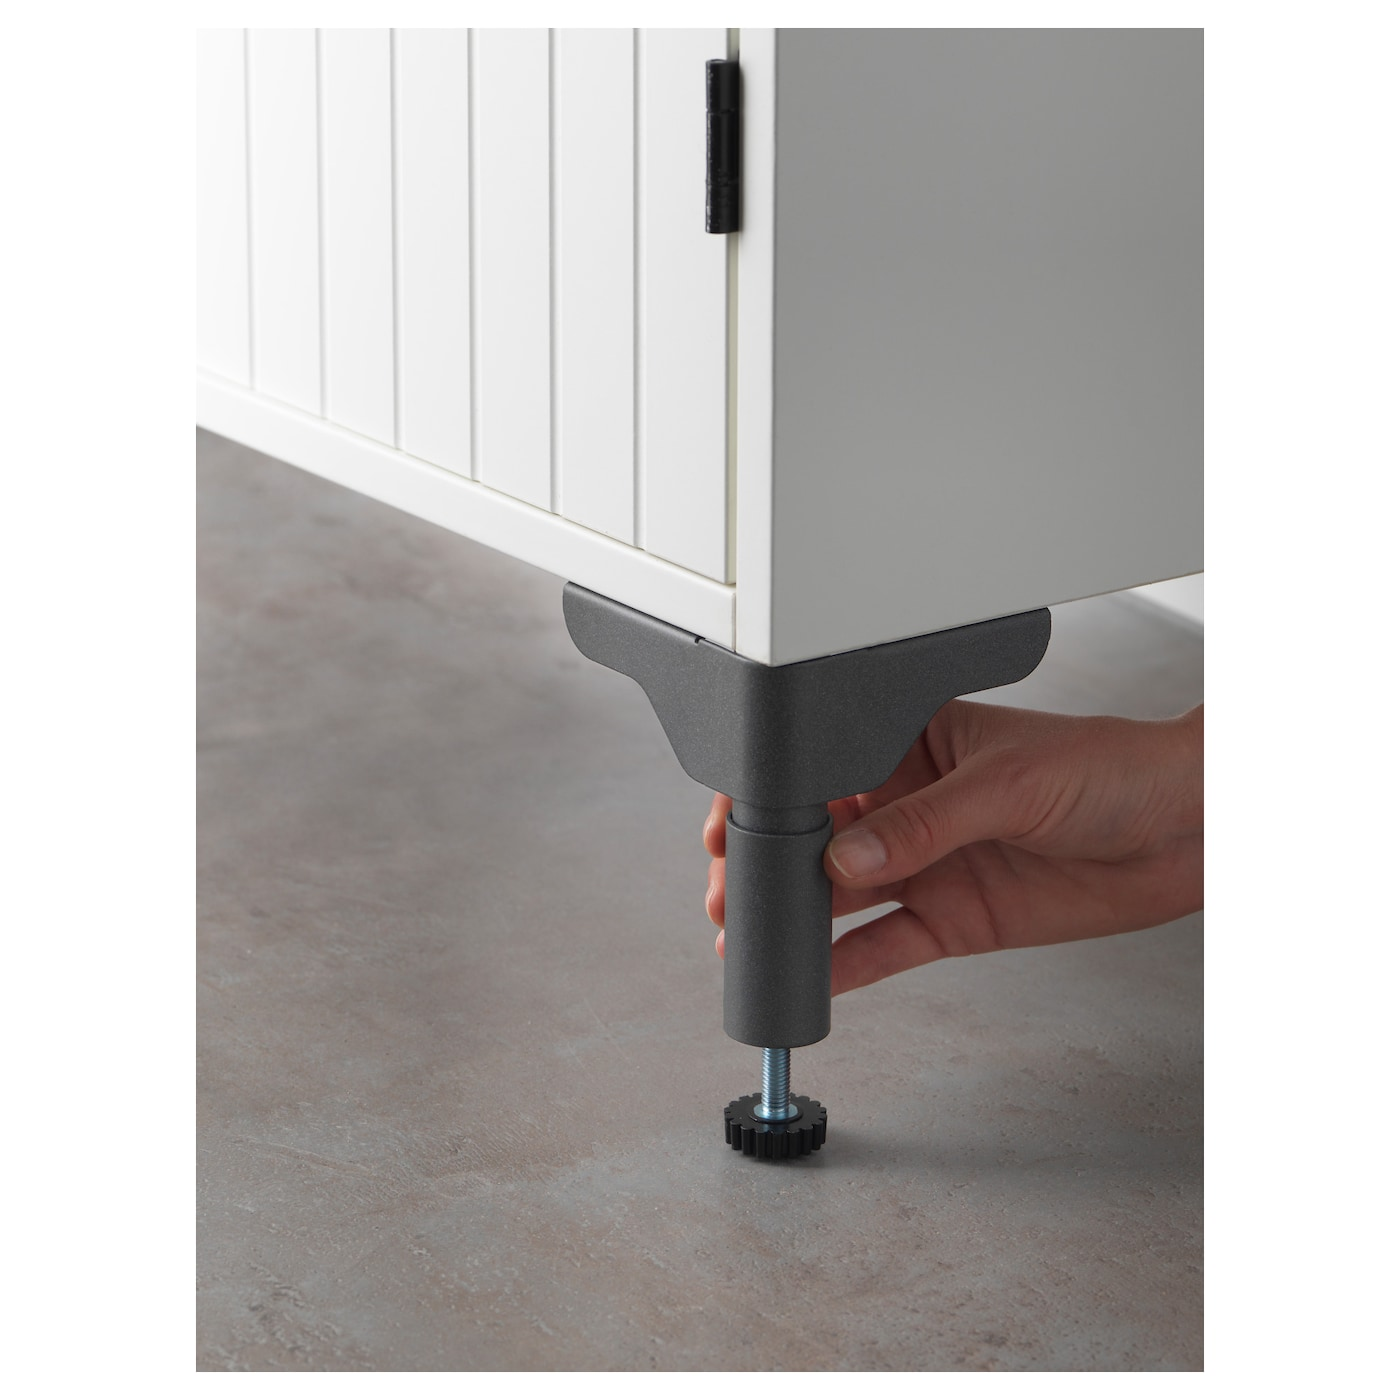 IKEA SILVERÅN leg Adjustable feet for increased stability and protection against floor moisture.